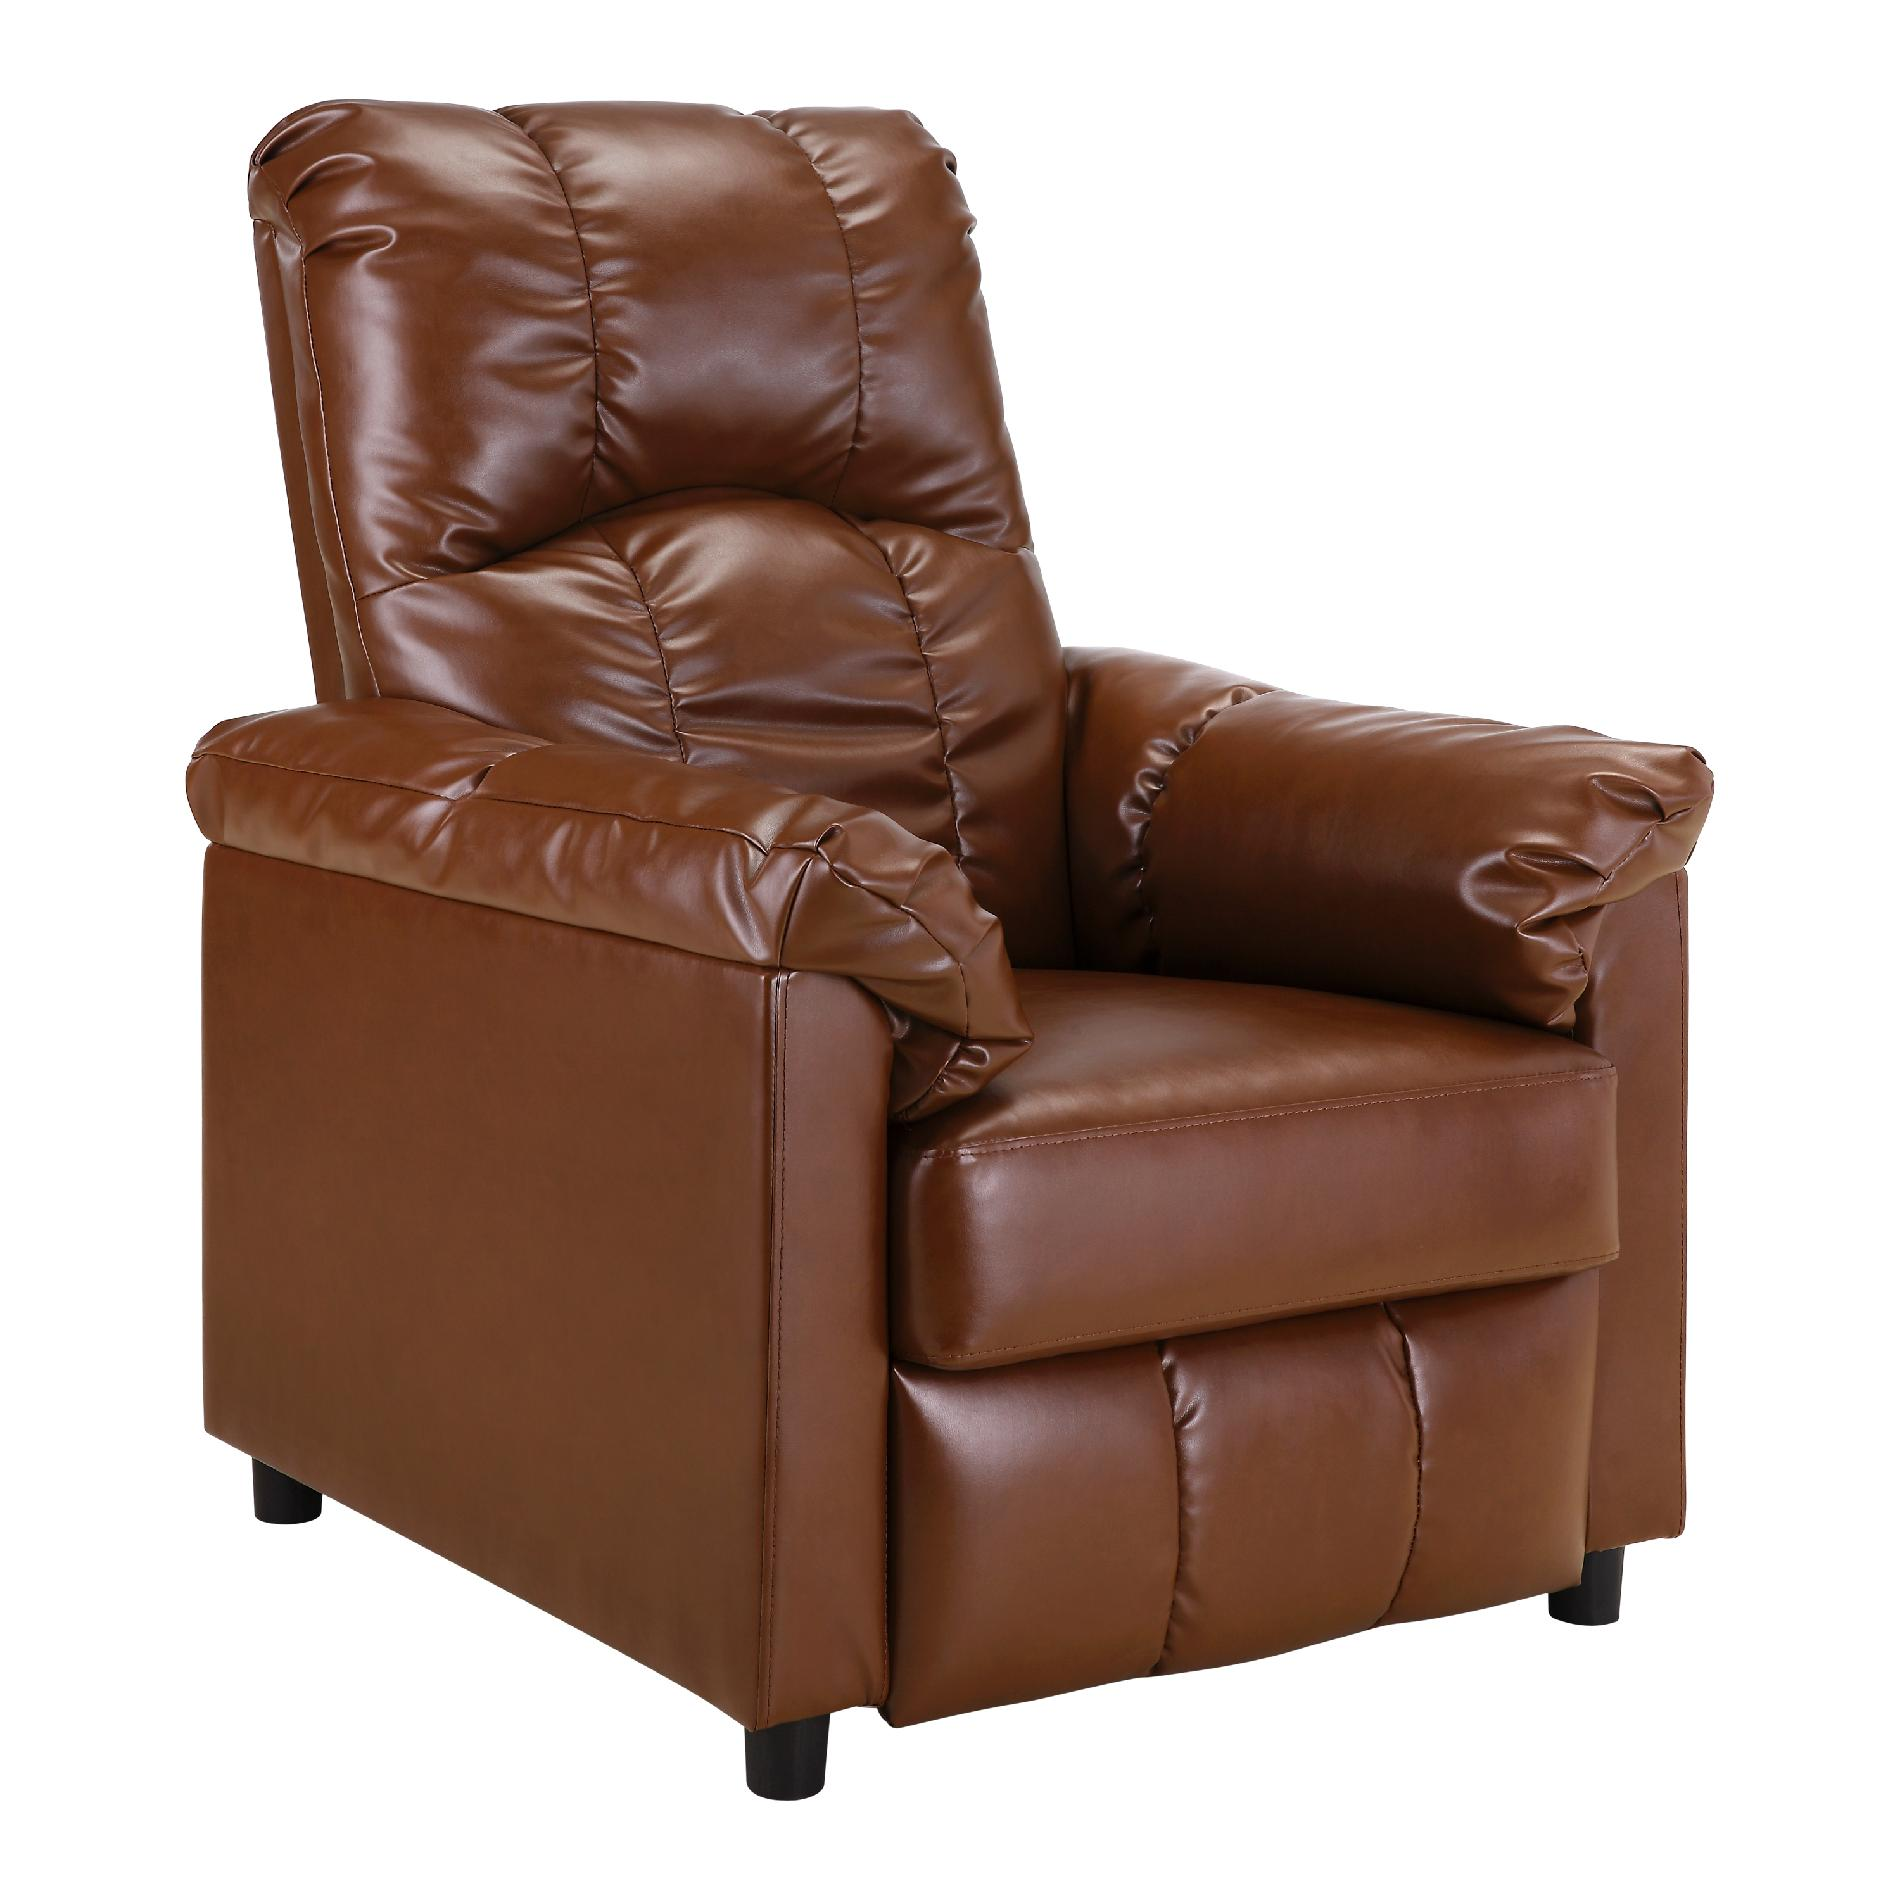 sears recliner chairs chicago bears living room get comfortable at